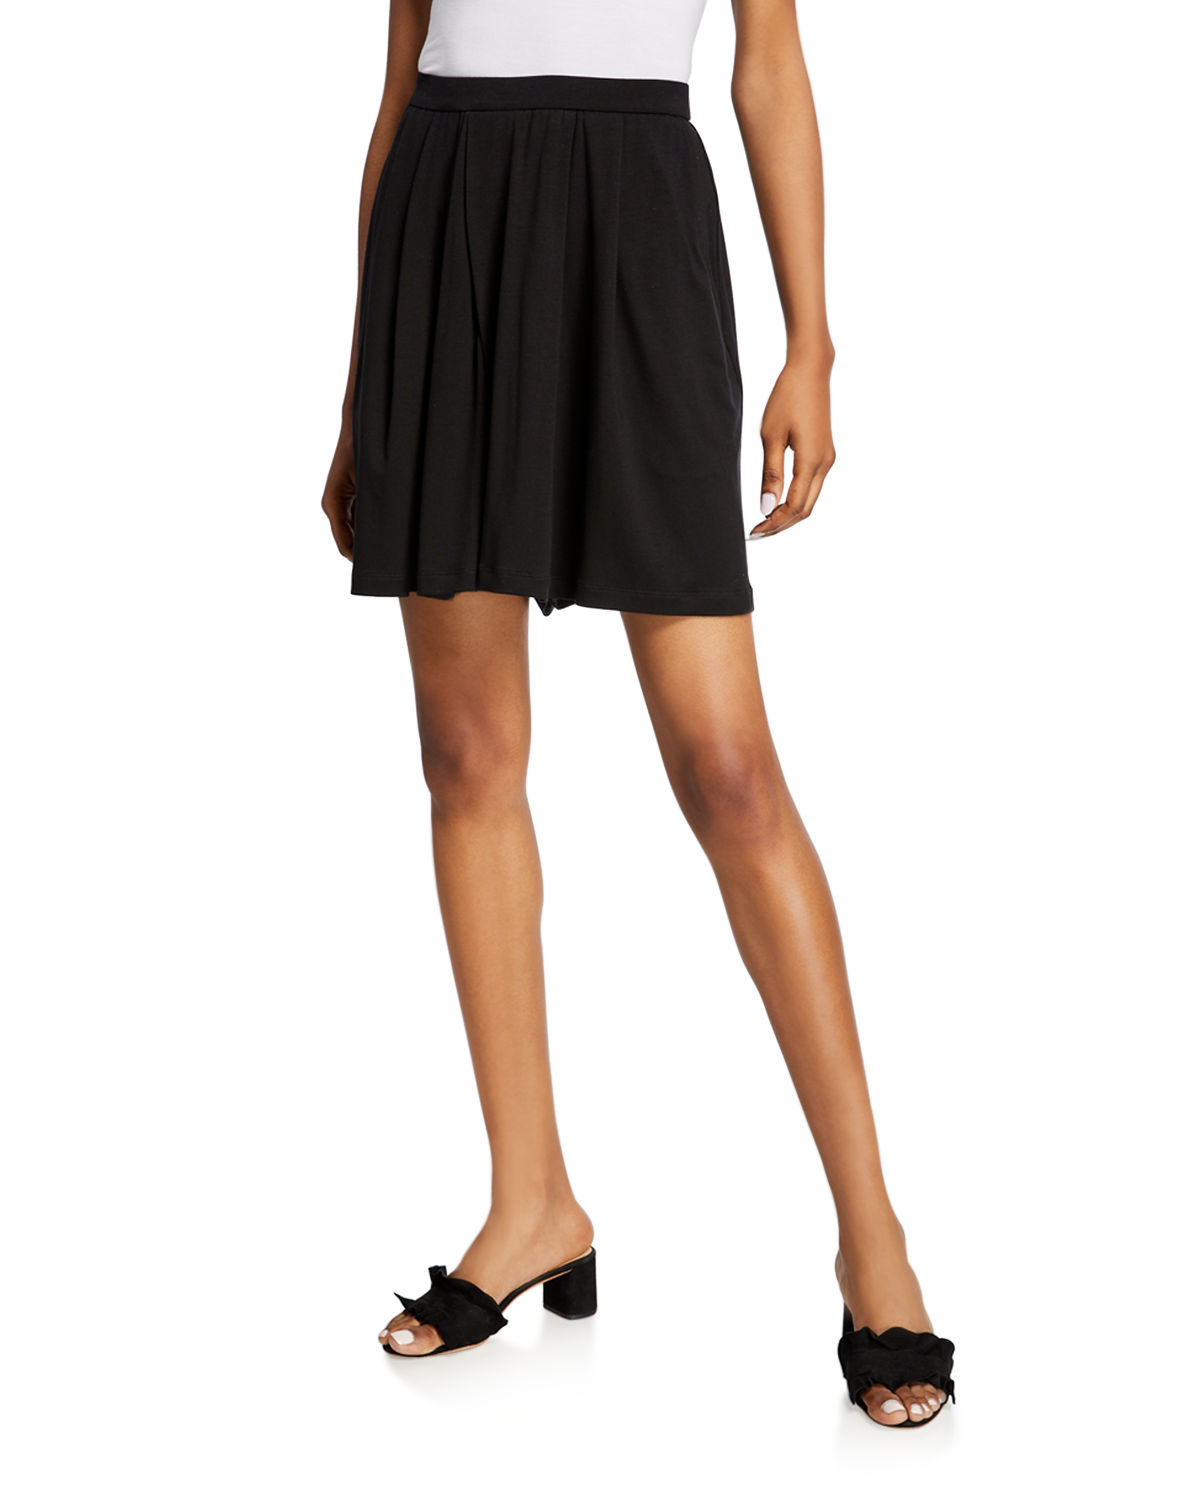 Eileen Fisher Shorts JERSEY PLEATED WALKING SHORTS